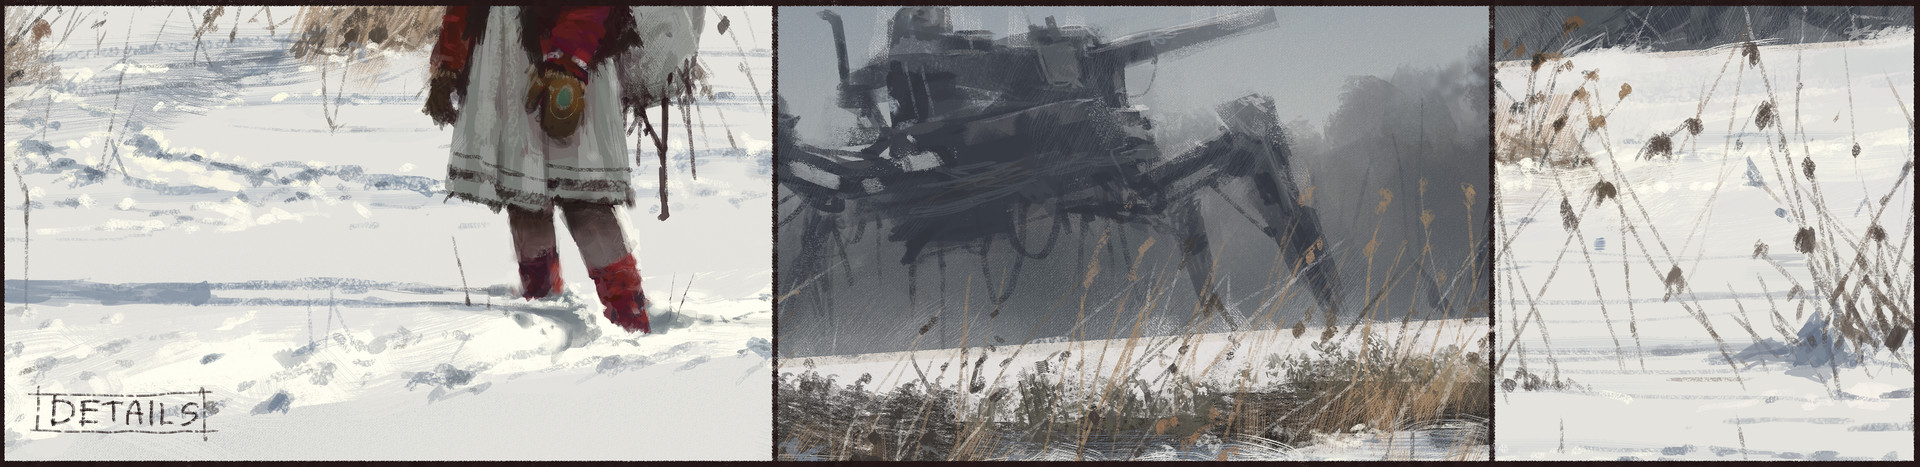 Jakub rozalski time to back home process4